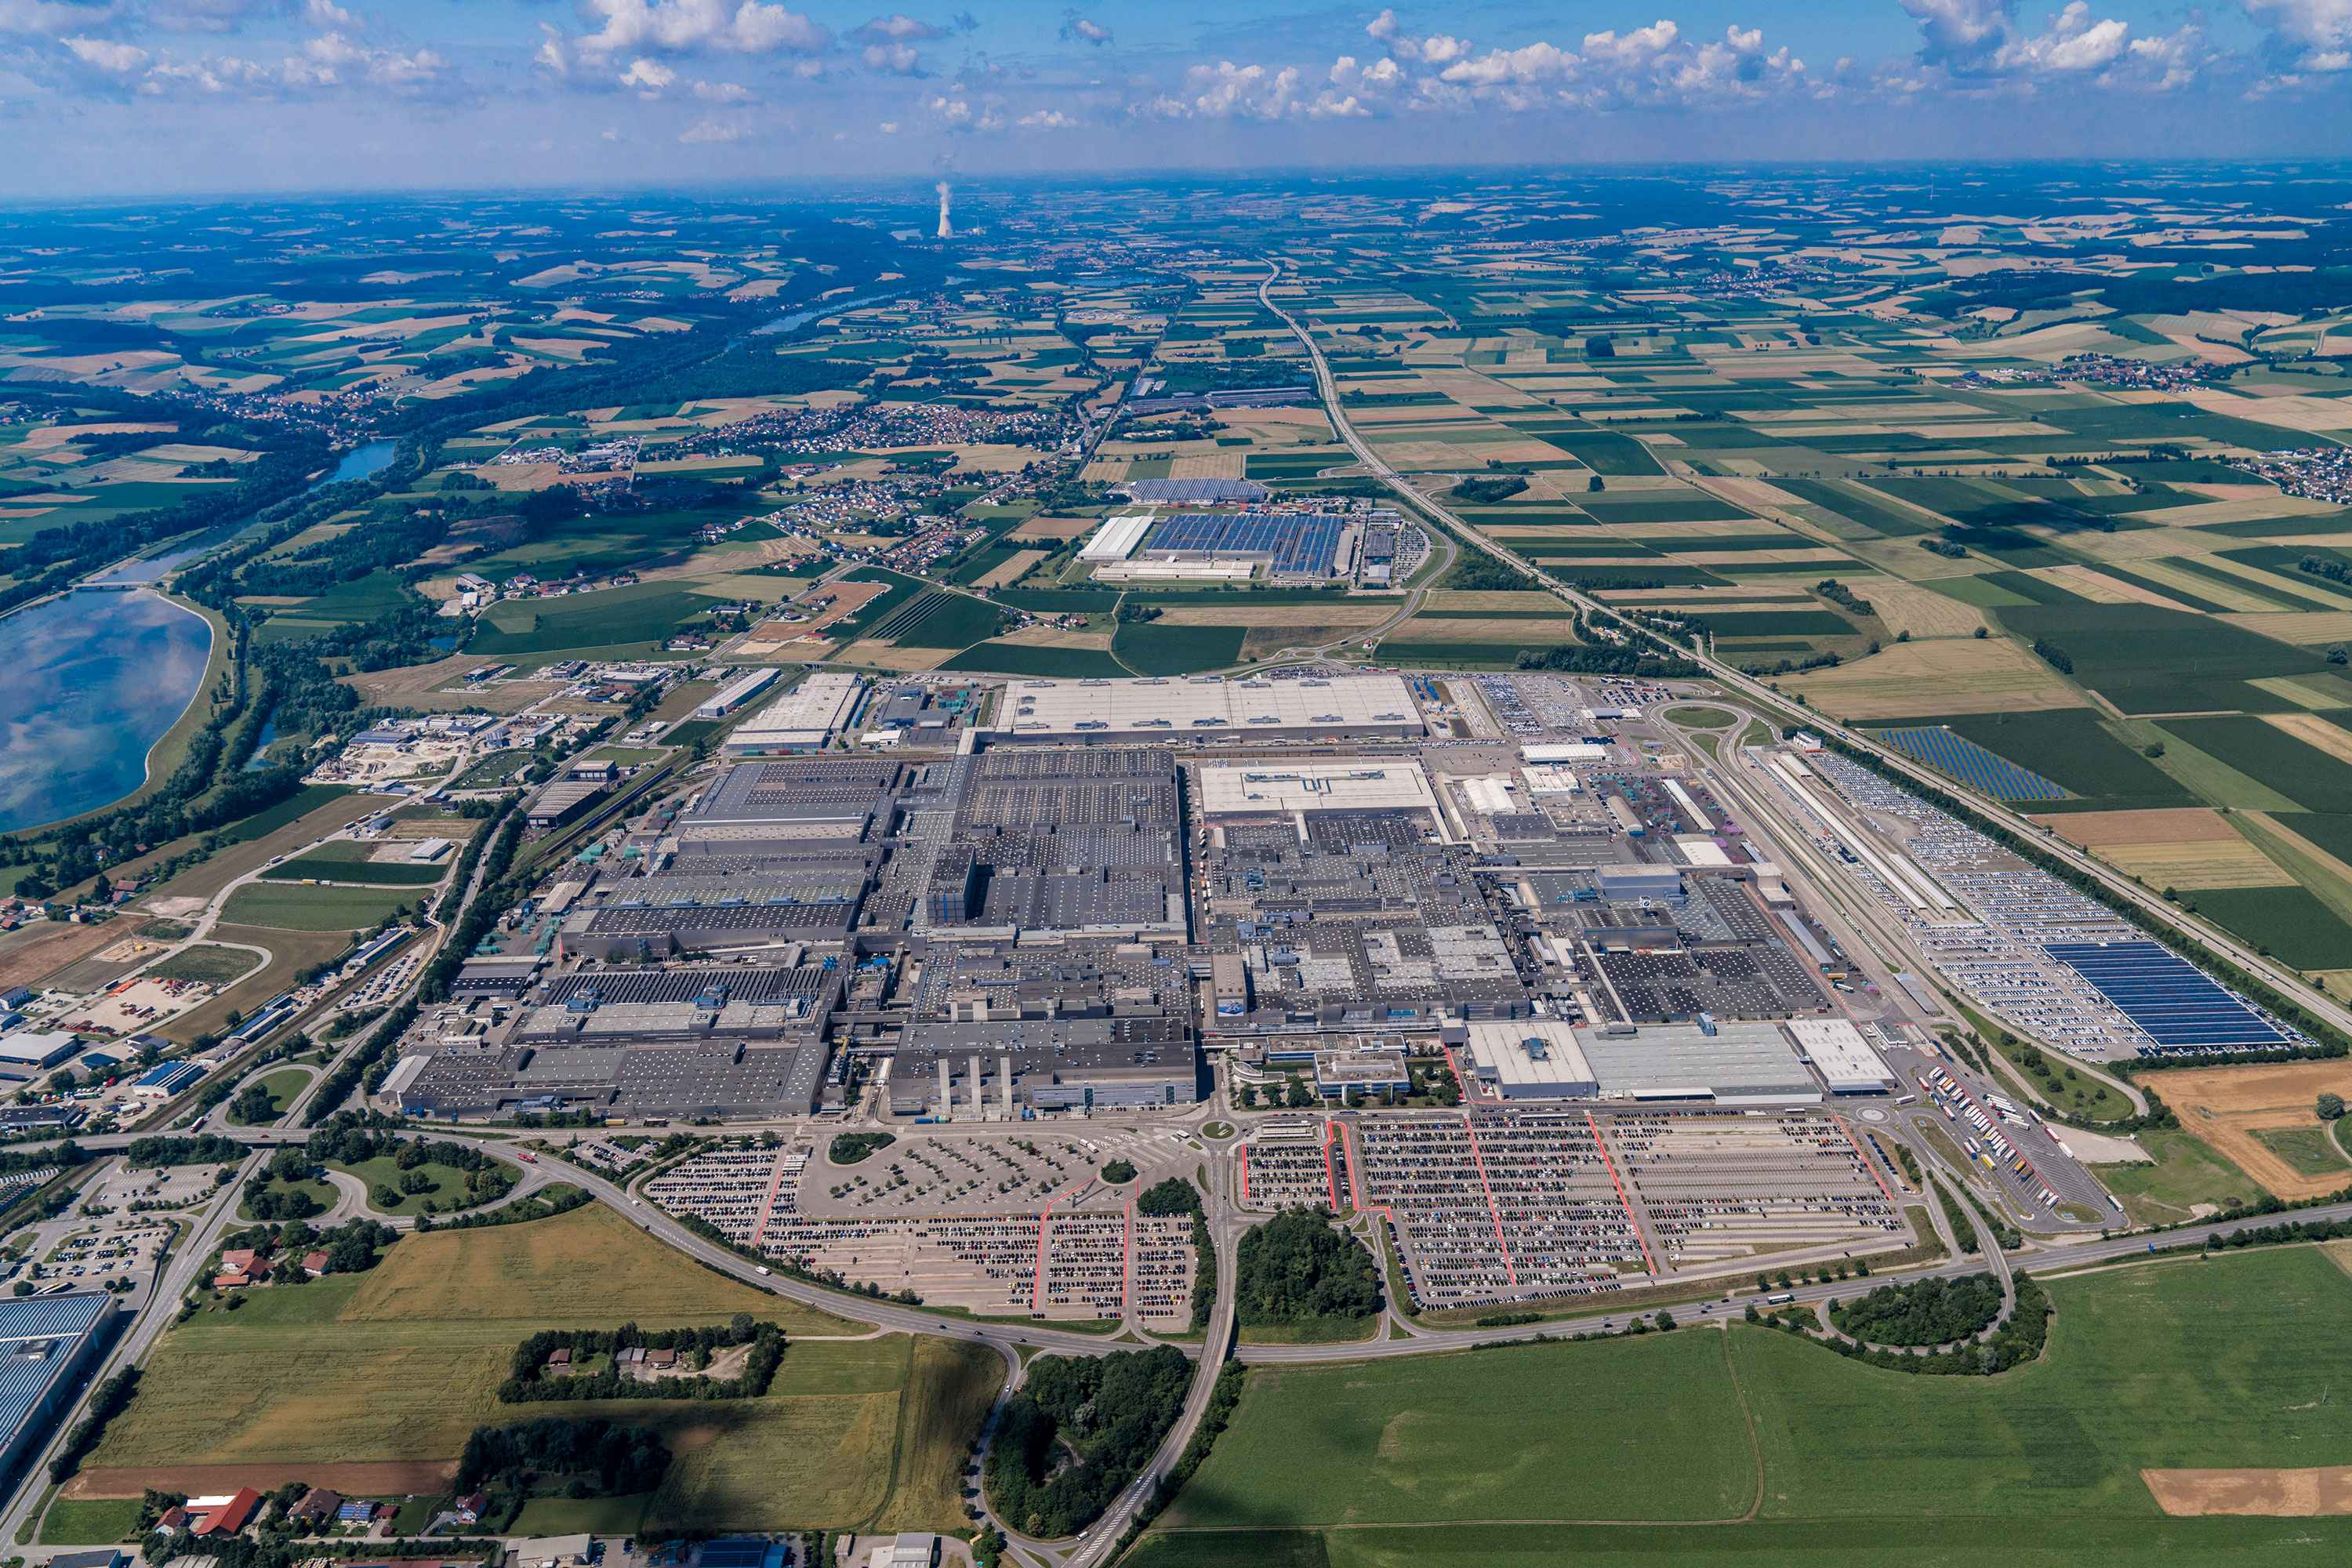 BMW Group Werk Dingolfing